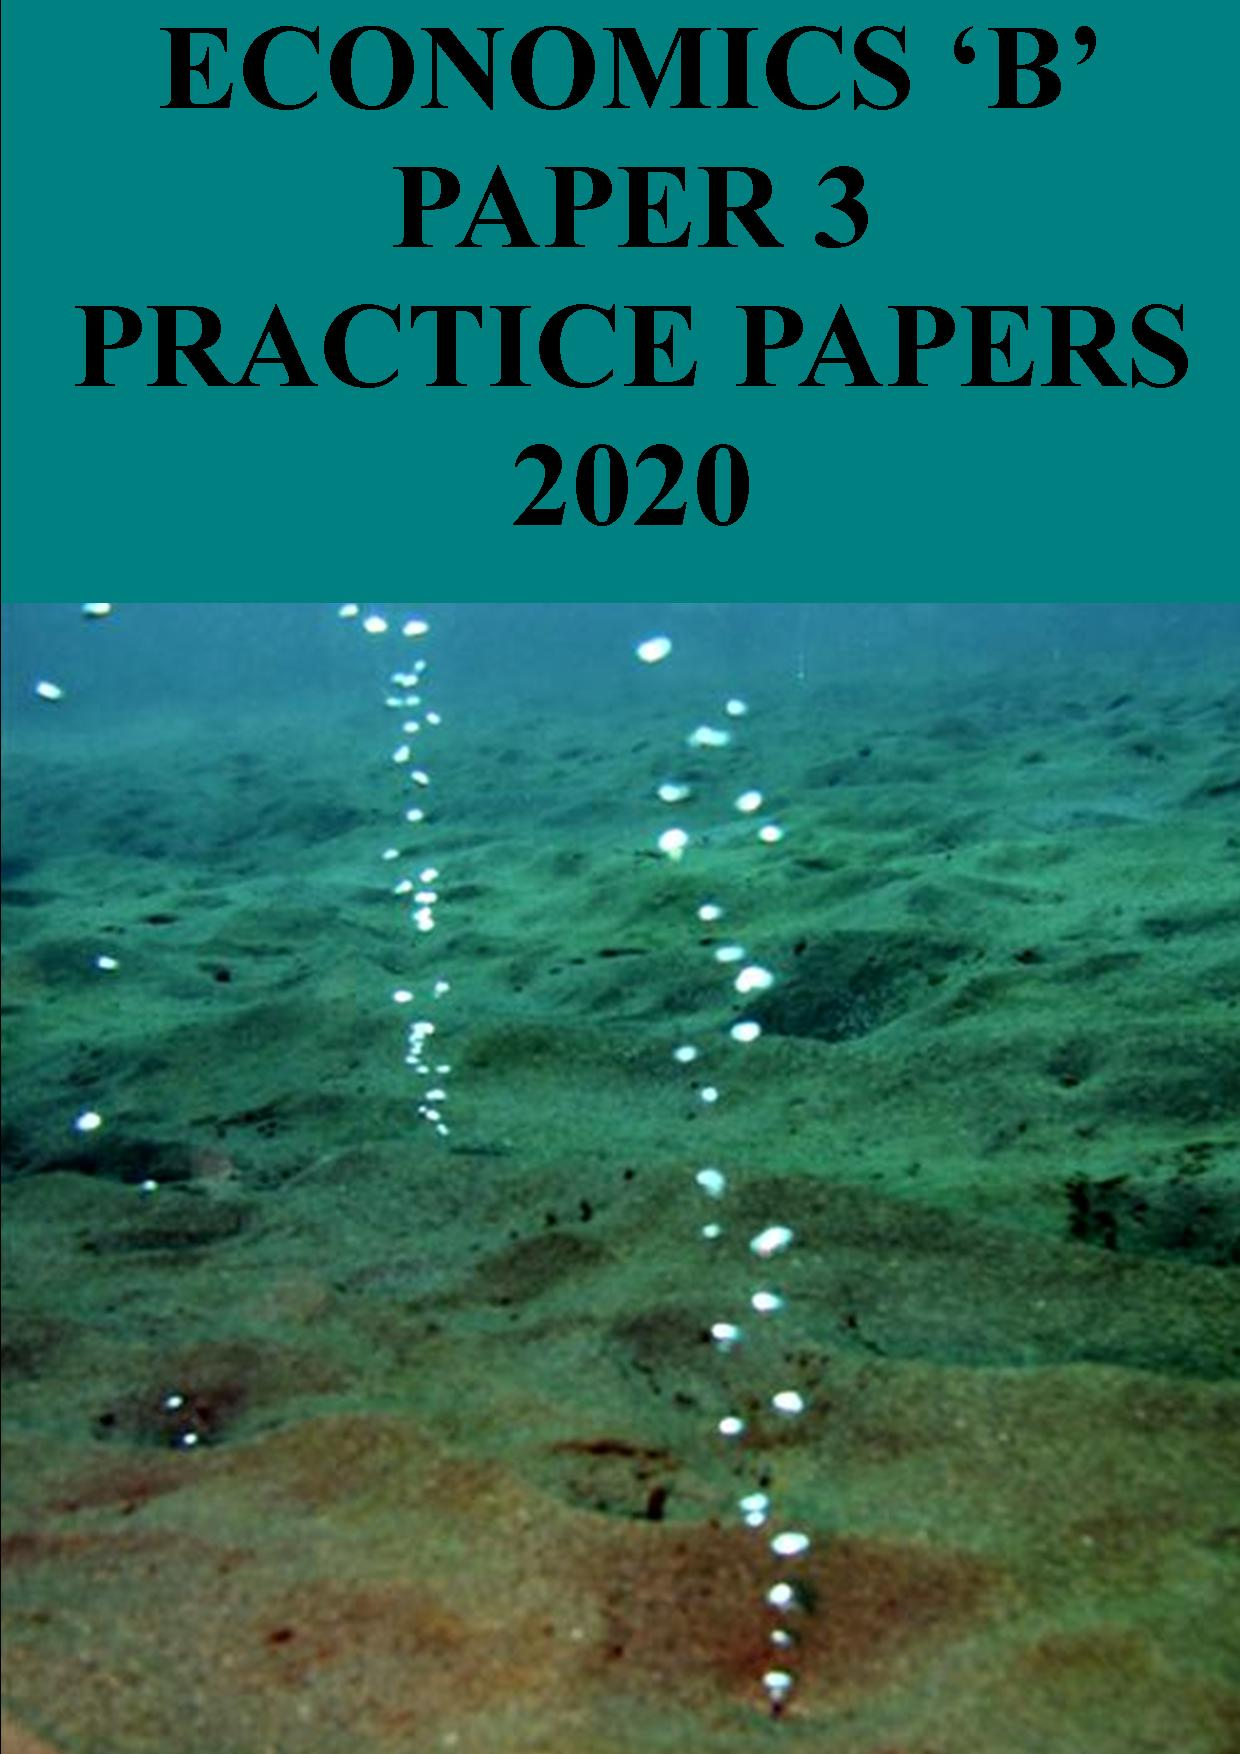 Paper 3 practice papers - 2020